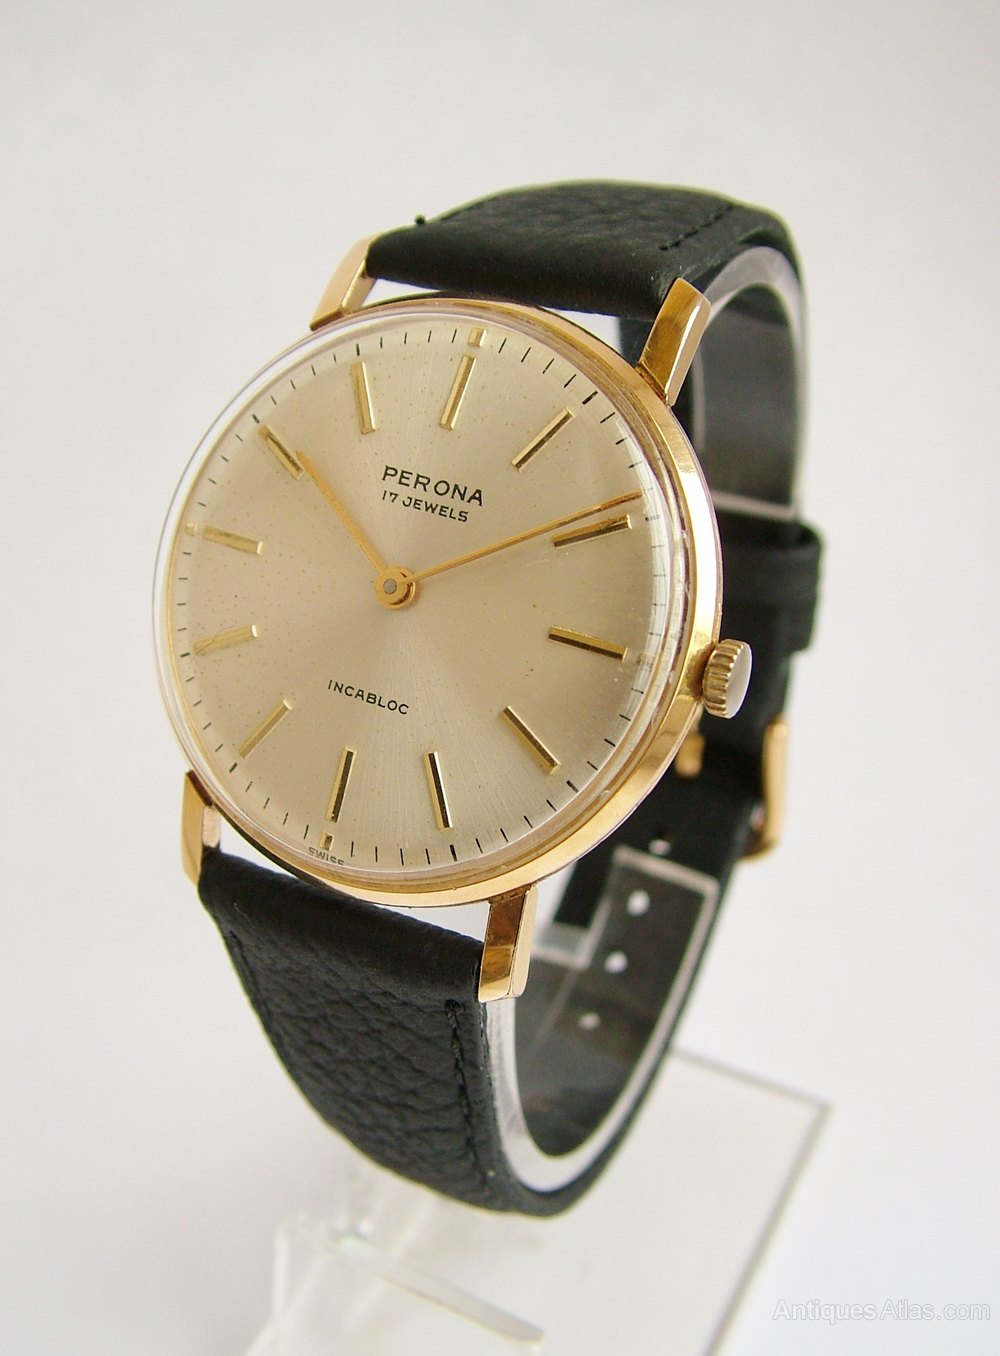 Antiques Atlas - 1960s Gents Perona Hand Winding Wrist Watch